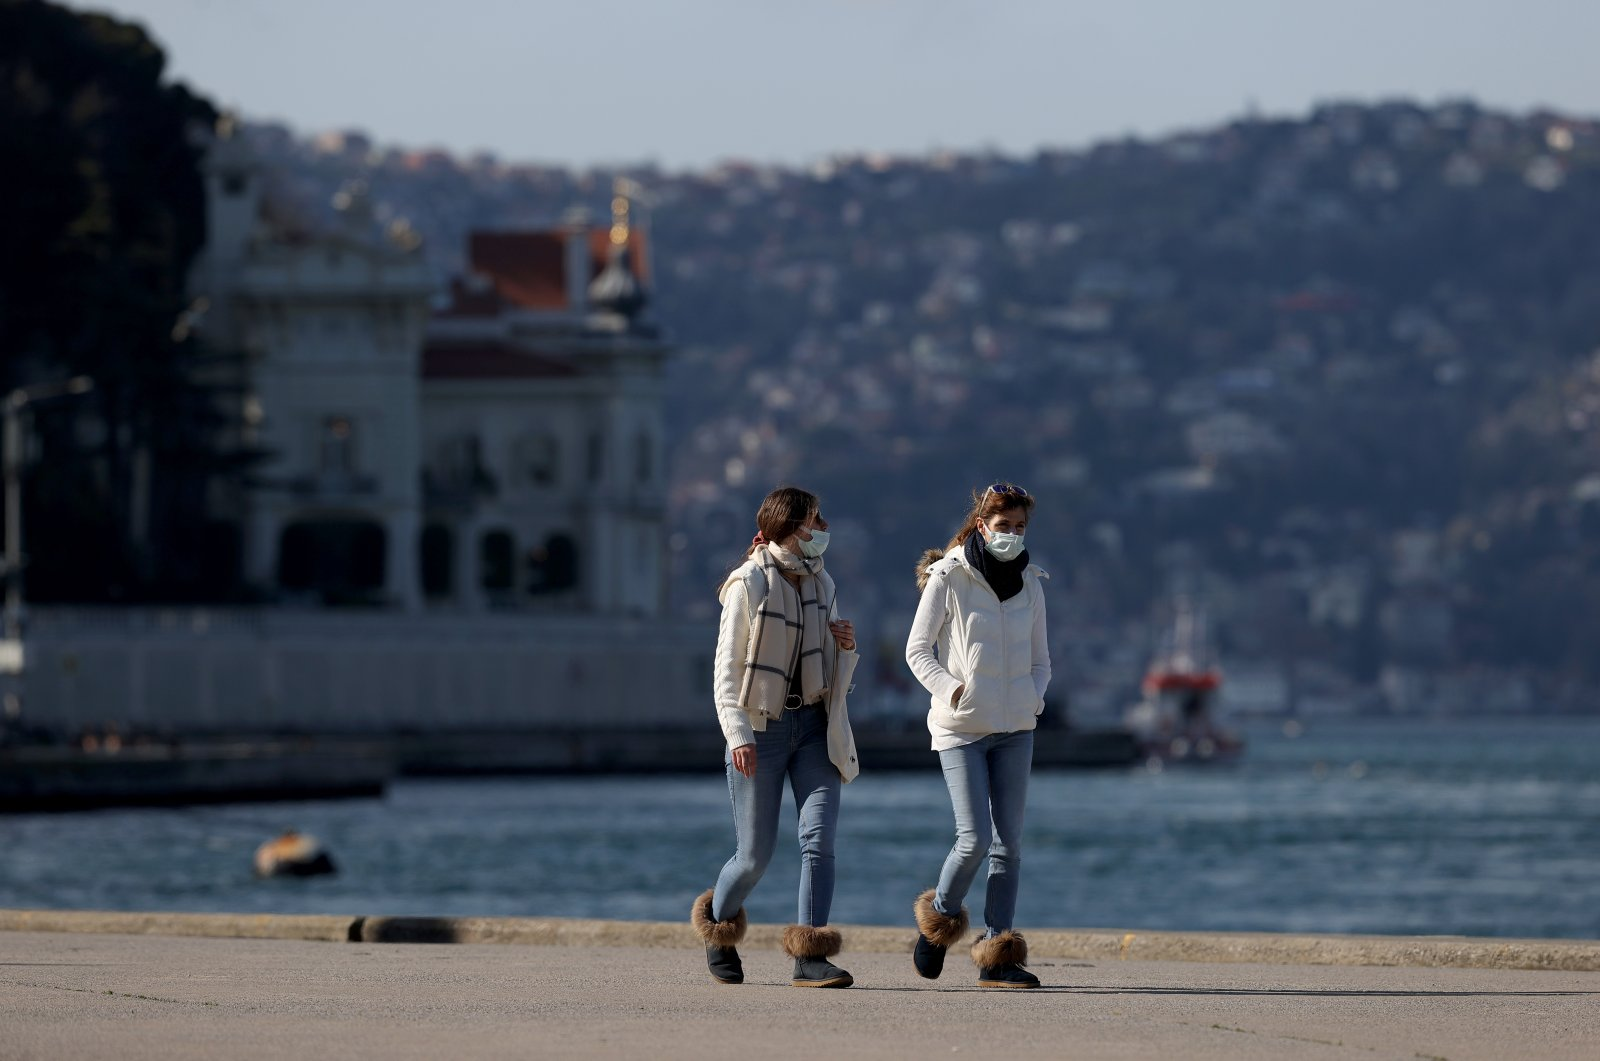 Tourists, exempt from weekend curfews declared over the COVID-19 pandemic, walk on the Bosporus waterfront in the Tarabya quarter of Istanbul, Turkey, April 10, 2021. (AA Photo)